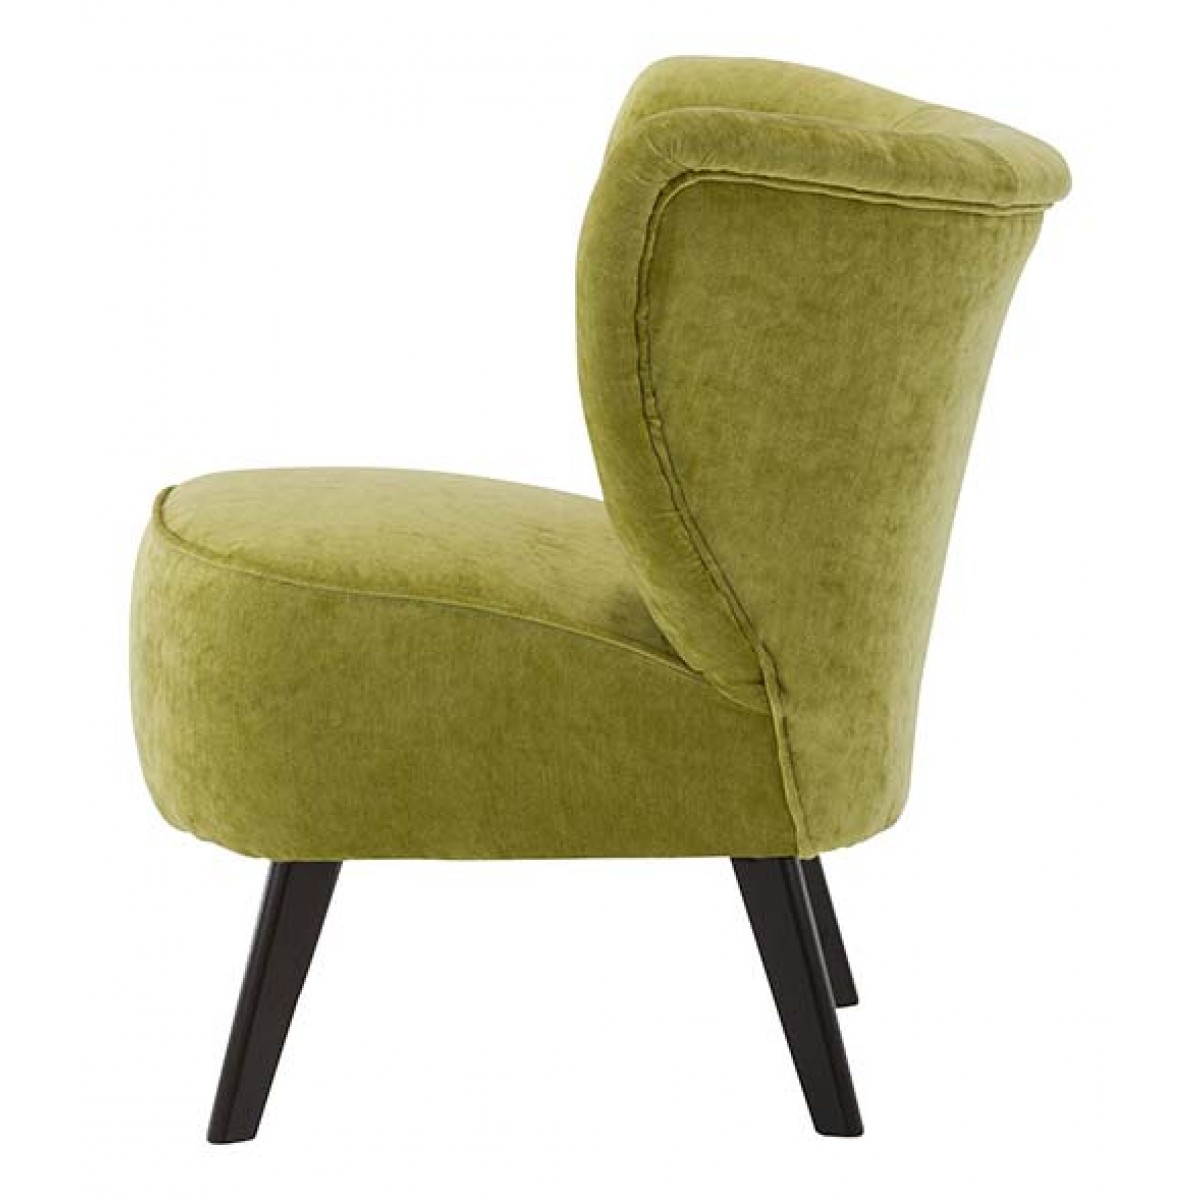 fauteuil scandinave velours vert anis louis gabriel mooviin. Black Bedroom Furniture Sets. Home Design Ideas